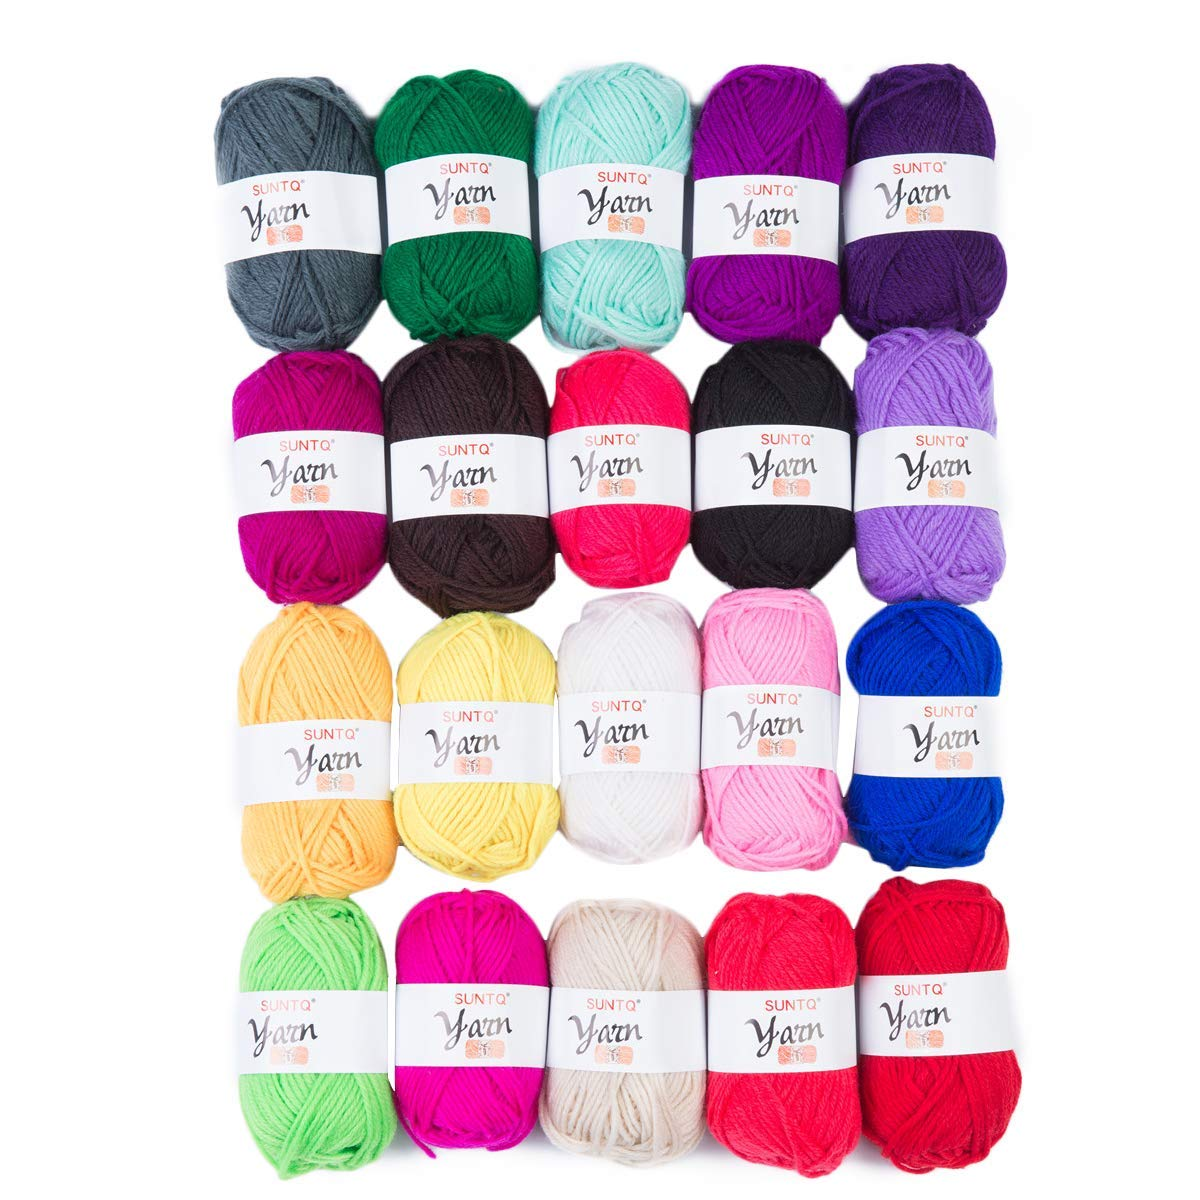 SUNTQ 100% Acrylic Yarn Skeins Bonbons Yarn Assorted Colors for Crochet & Knitting Assorted Rainbow Variety Colored Assortment (20g x 40m(About 43yard) x 20)